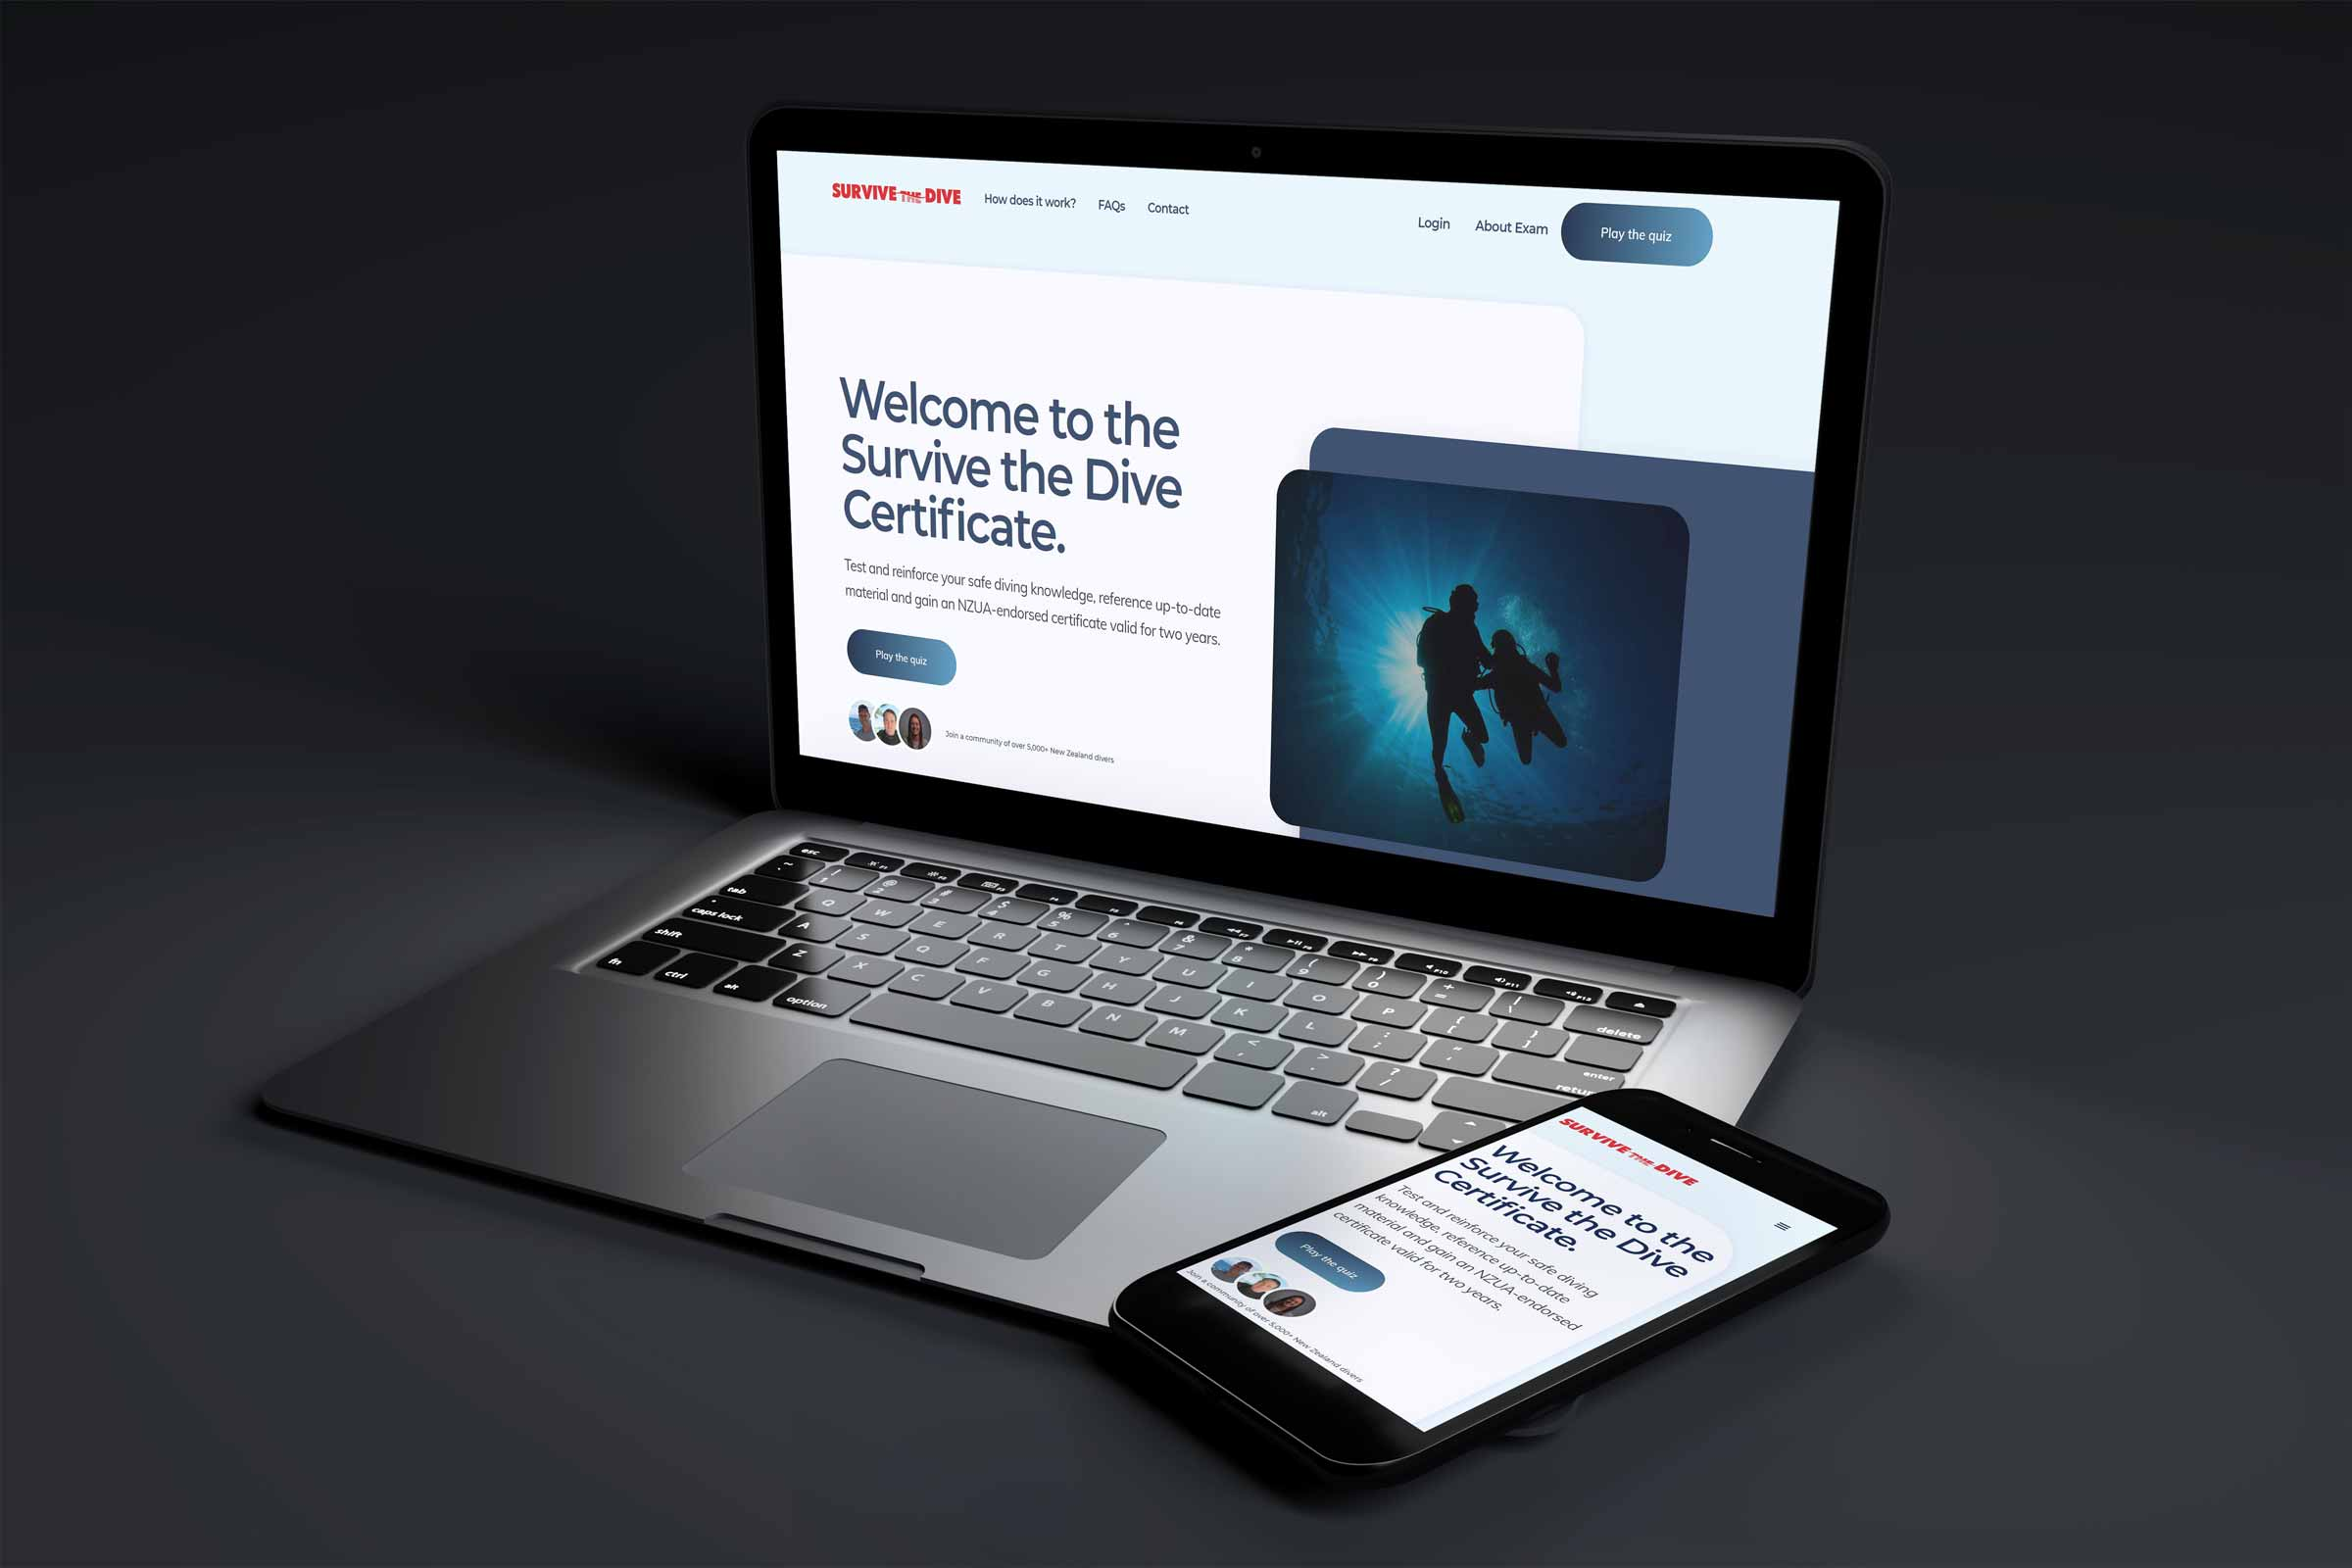 Survive the Dive certification launched